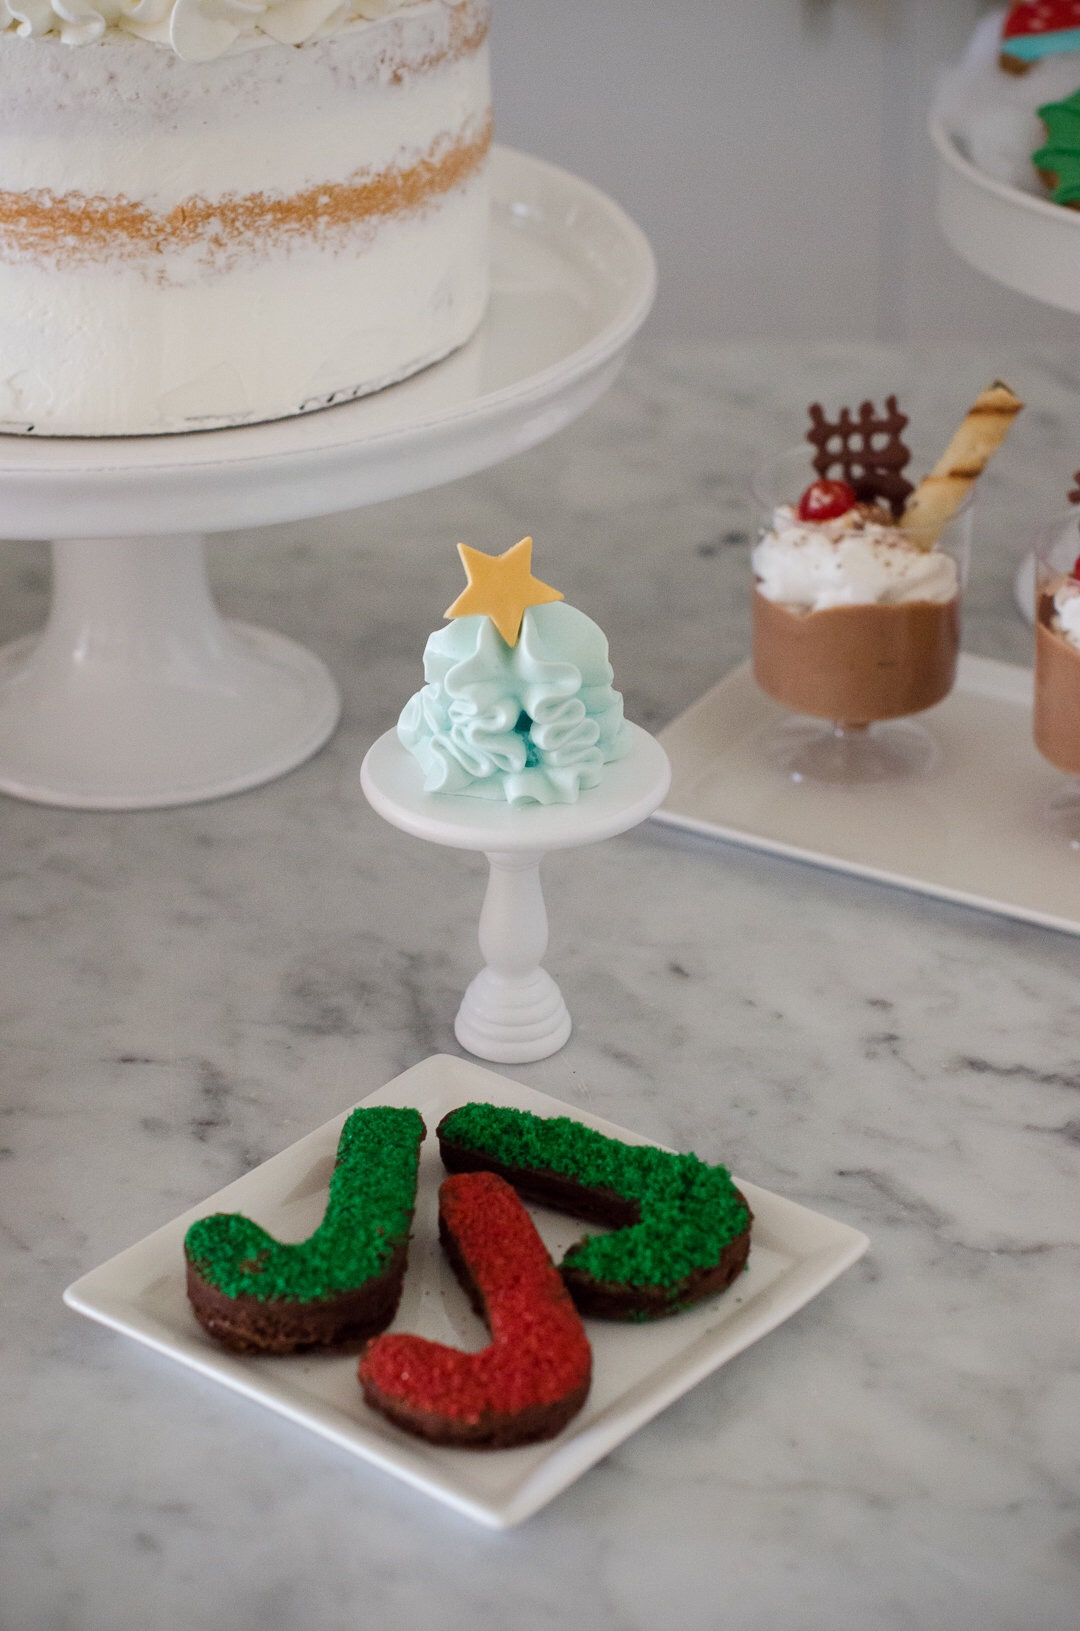 Brownies, meringues, and cakes - create a sweet display of Christmas desserts on a miniature size. See more holiday party inspiration from Austin based party stylist Mint Event Design at www.minteventdesign.com #desserttable #christmasdesserts #holidayparty #holidays #partyideas #christmasparty #holidaypartyideas